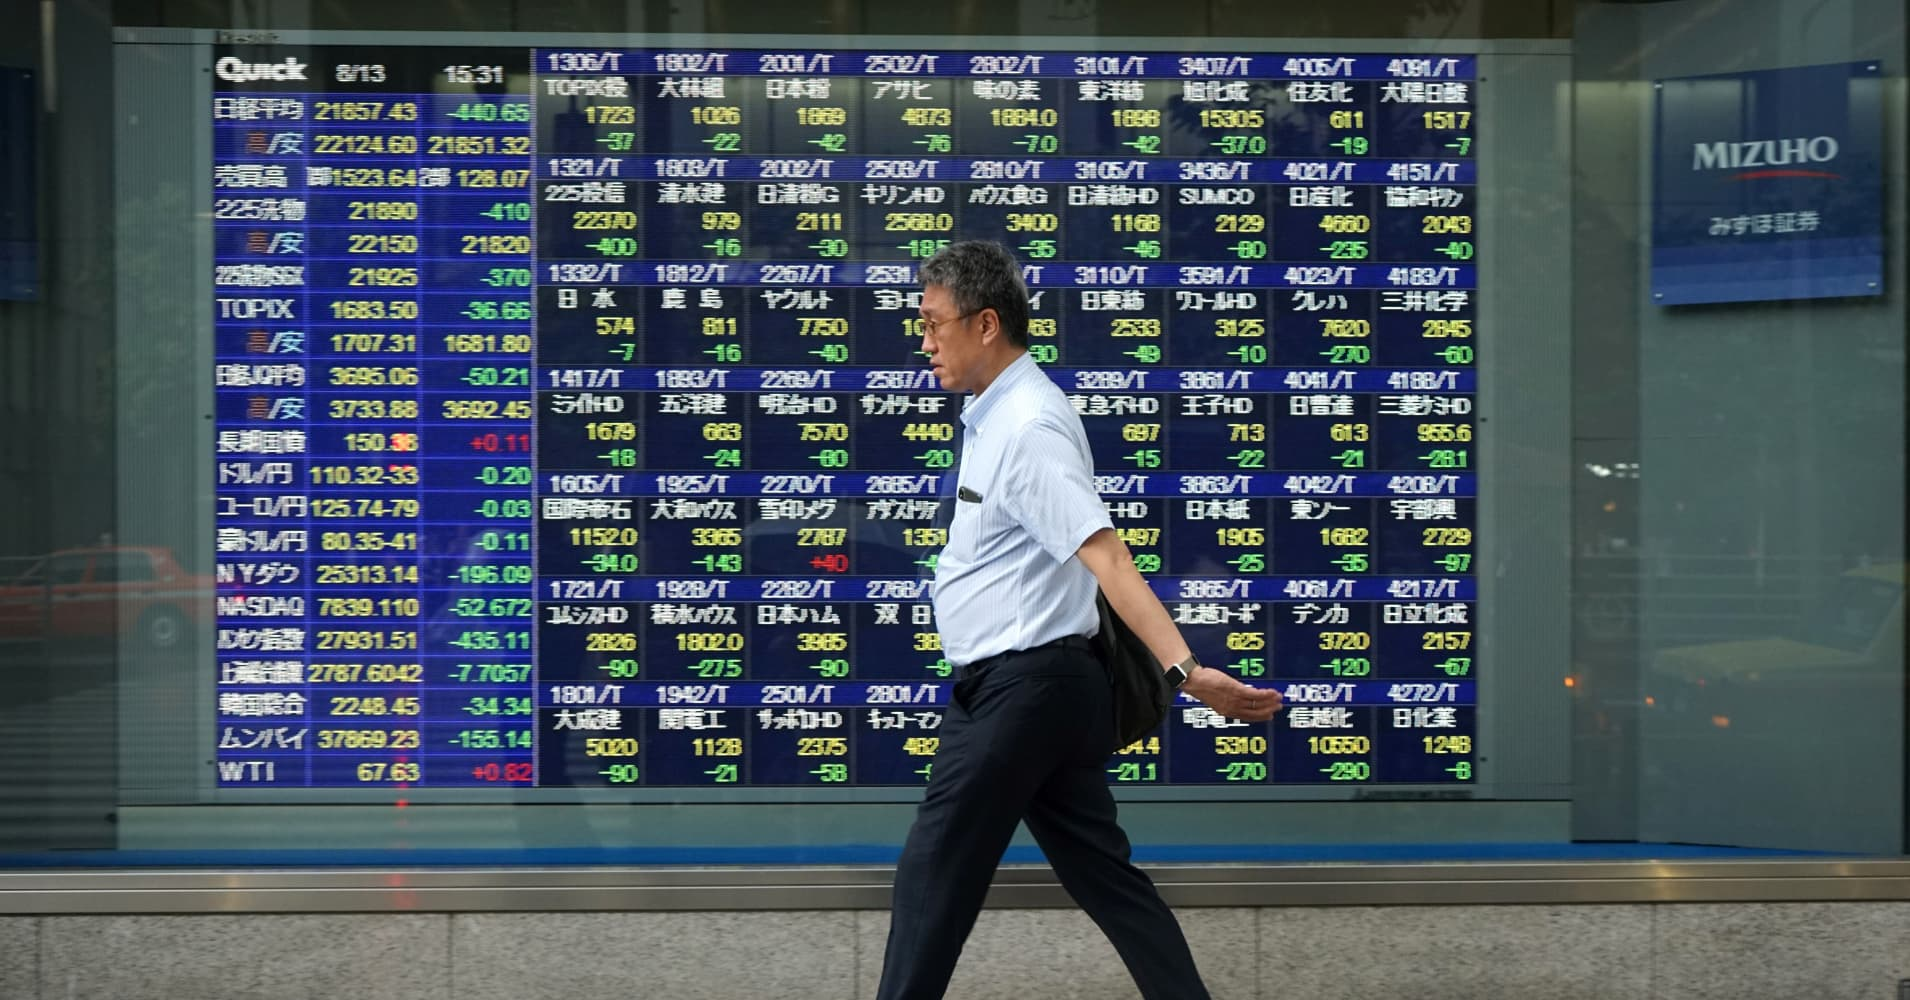 Asia markets trade higher as investors wait on crucial Brexit vote